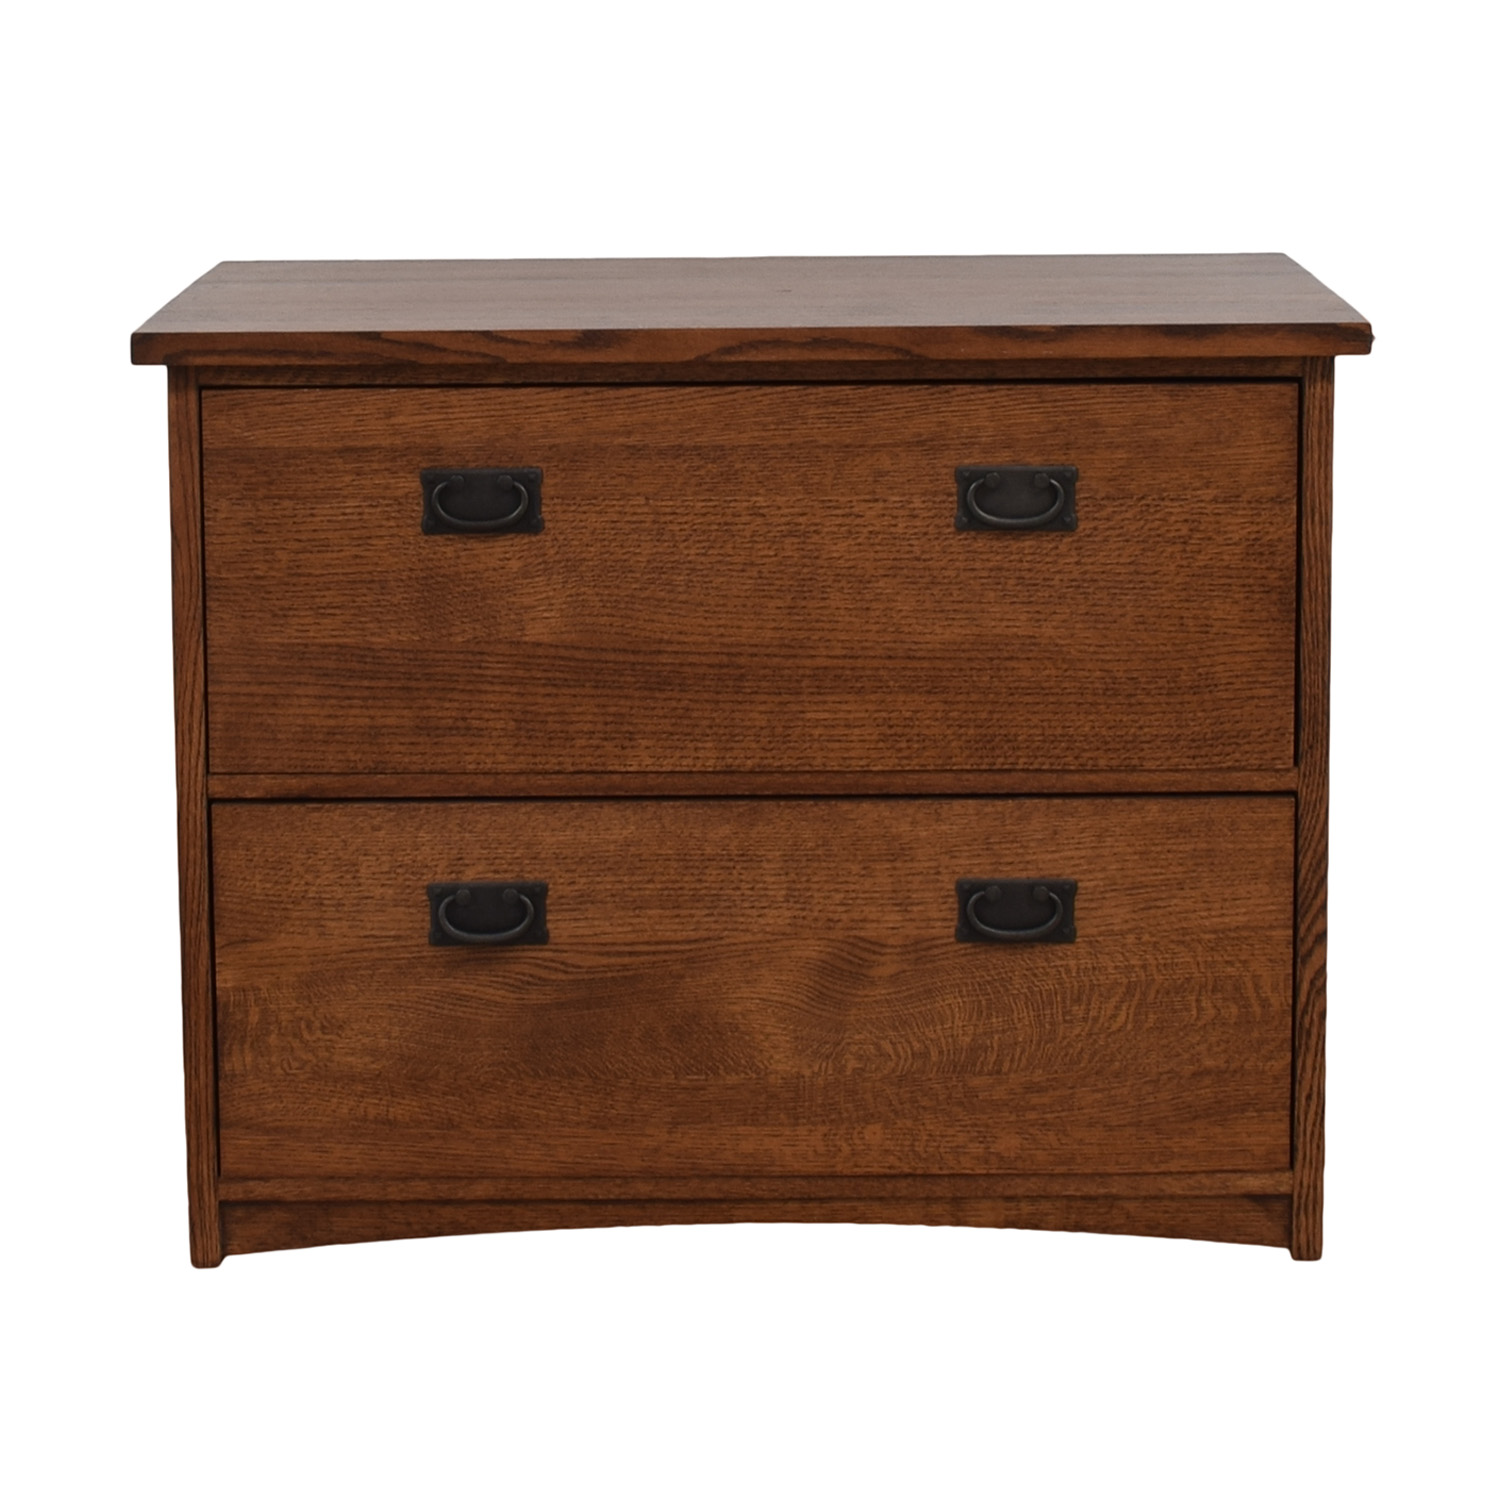 shop  Mission Style Credenza online